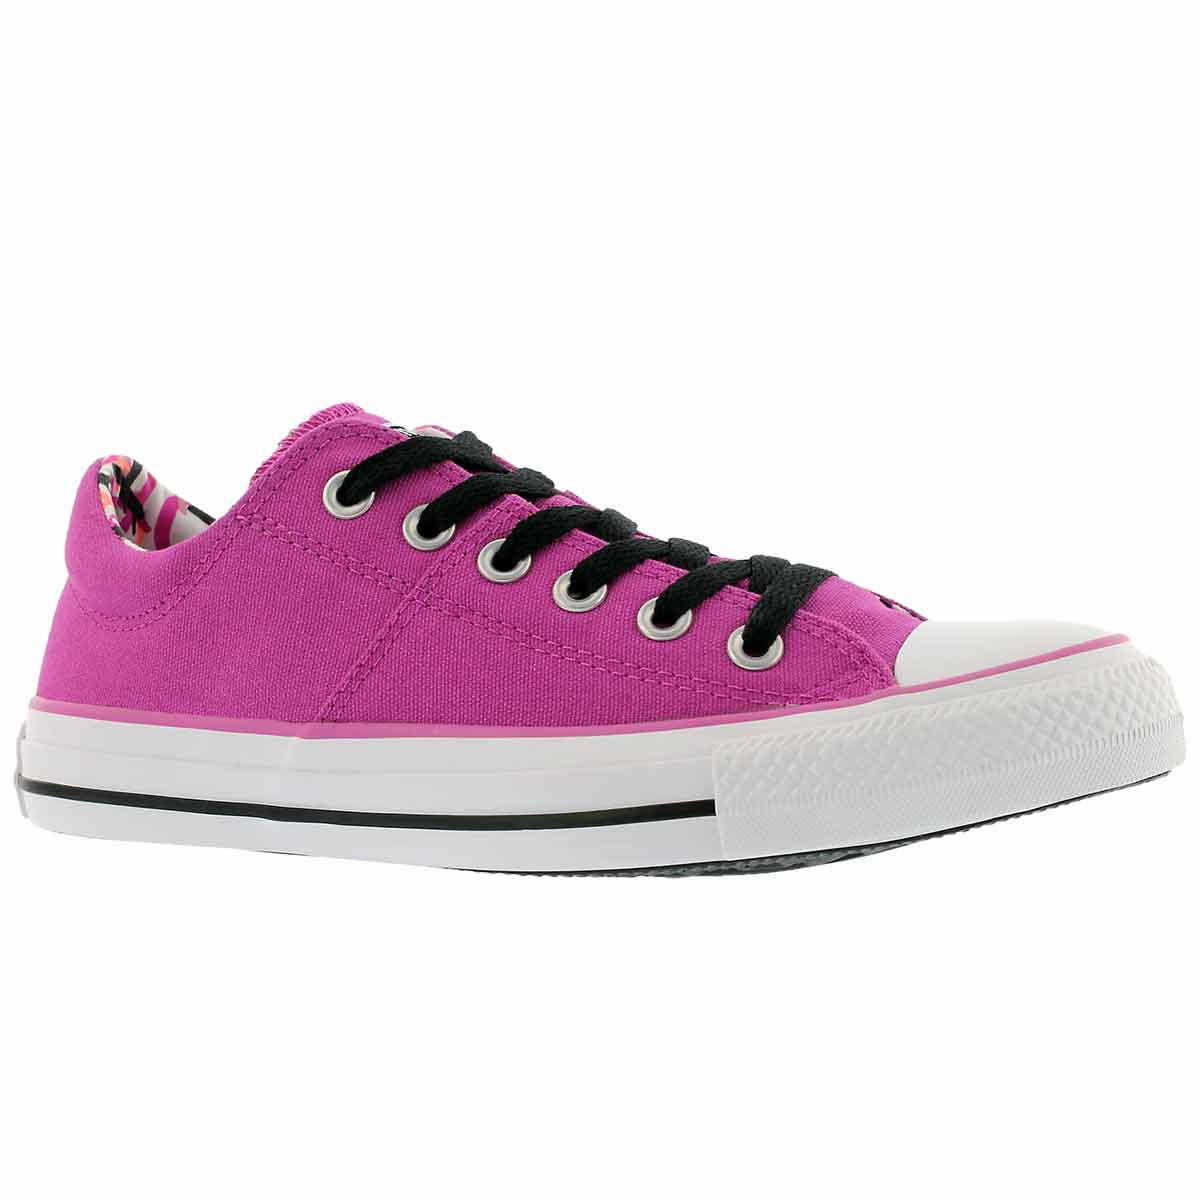 Women's CT ALL STAR MADISON magenta/blk sneakers